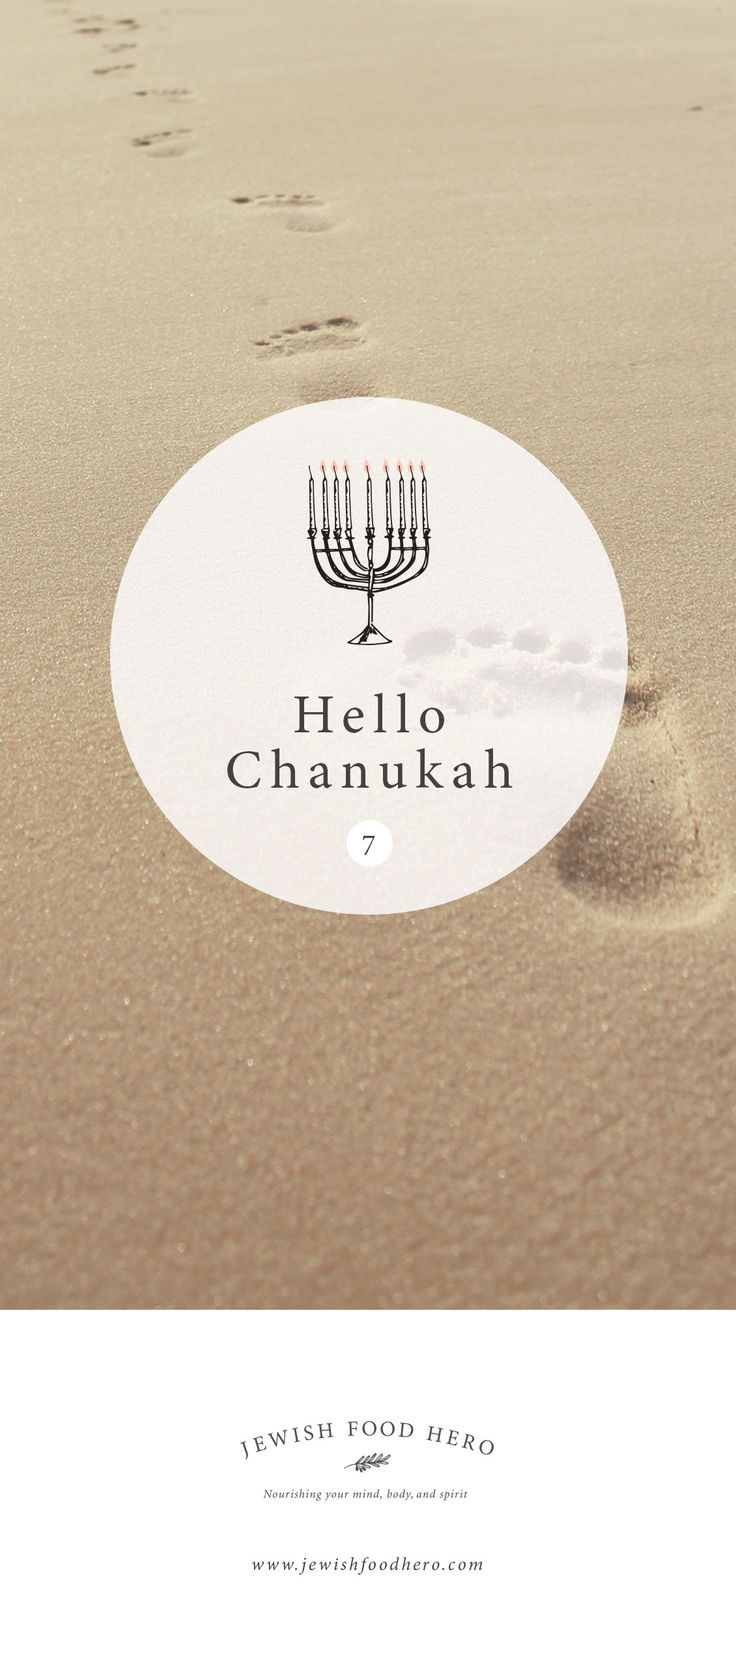 Hello Chanukah in Summer for the Jewish community in Southern Hemisphere by Jewish Food Hero